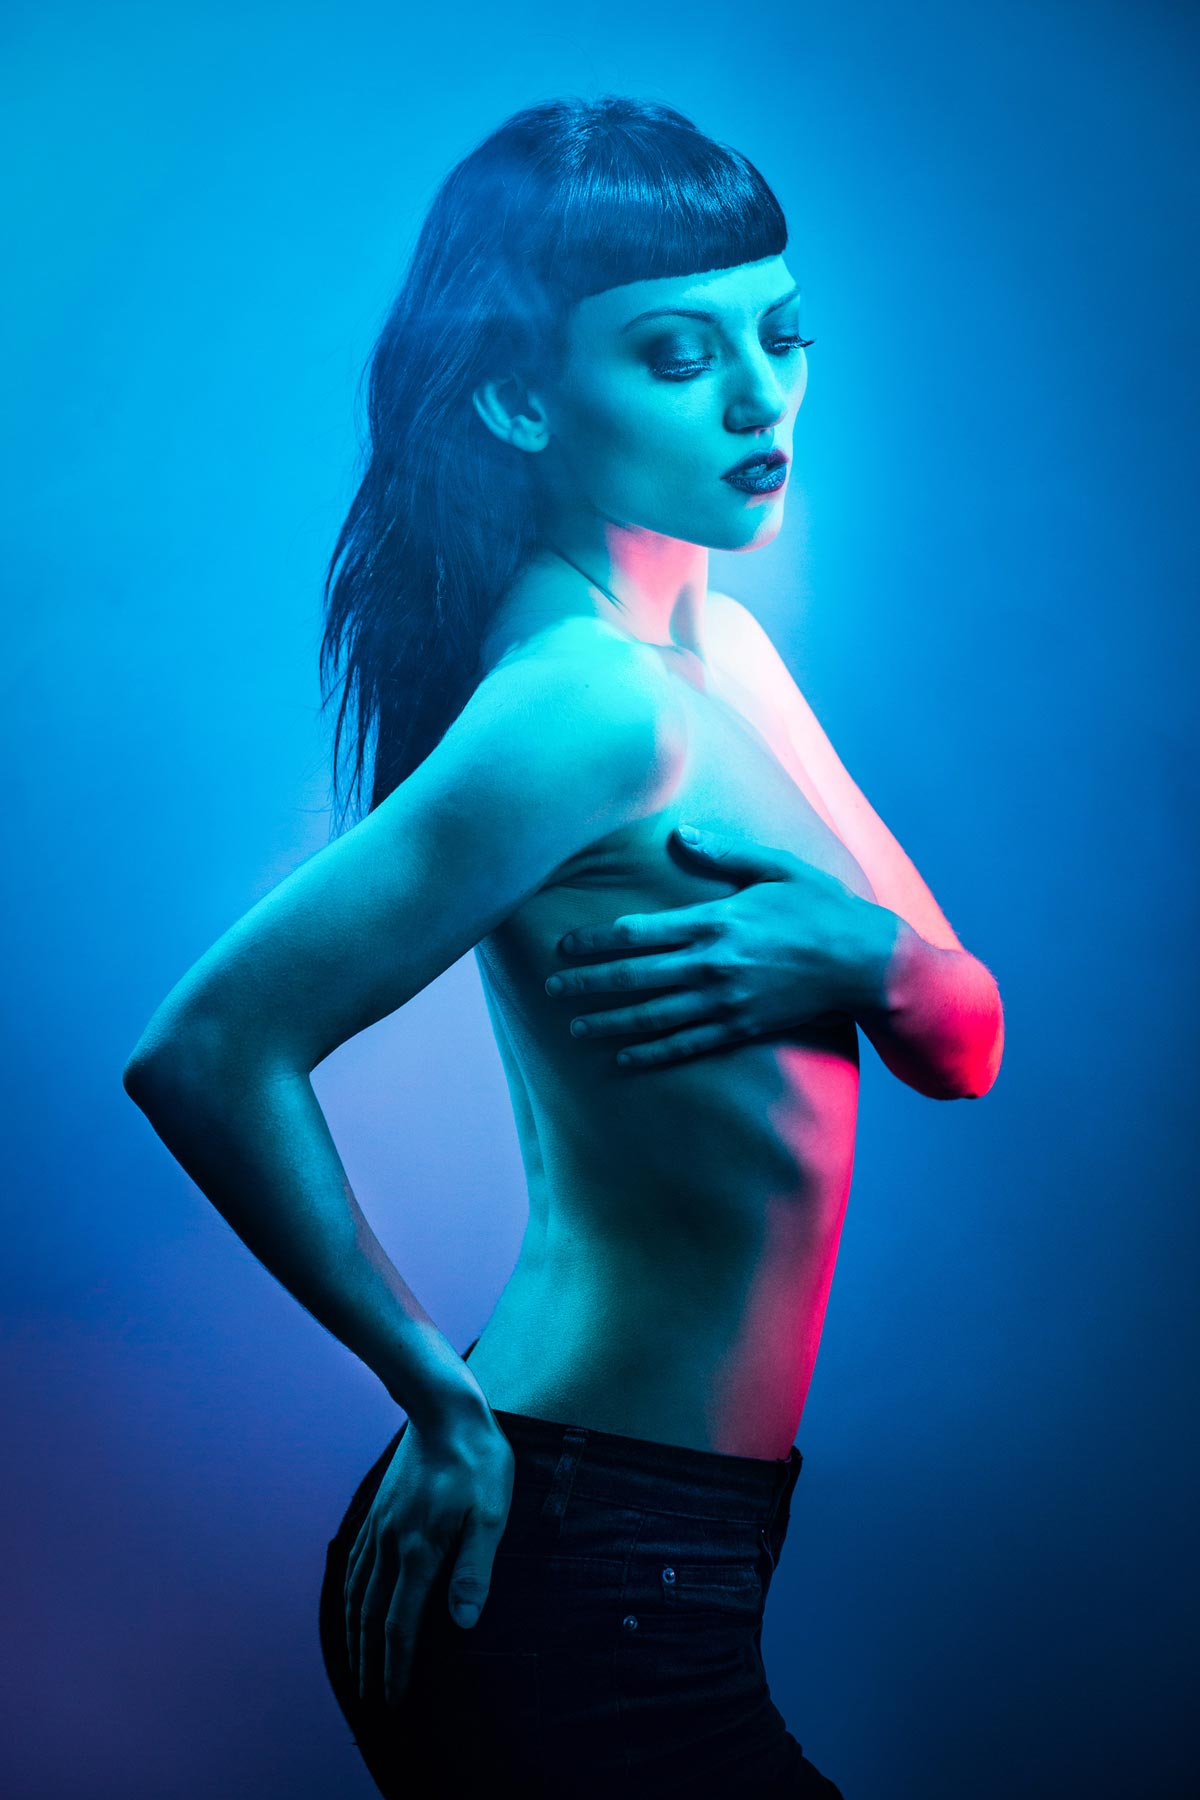 A fashion shot using colourful gels of a girl with black hair lit in red and blue, naked top half covering her breasts, fashion photography by Nukemedia